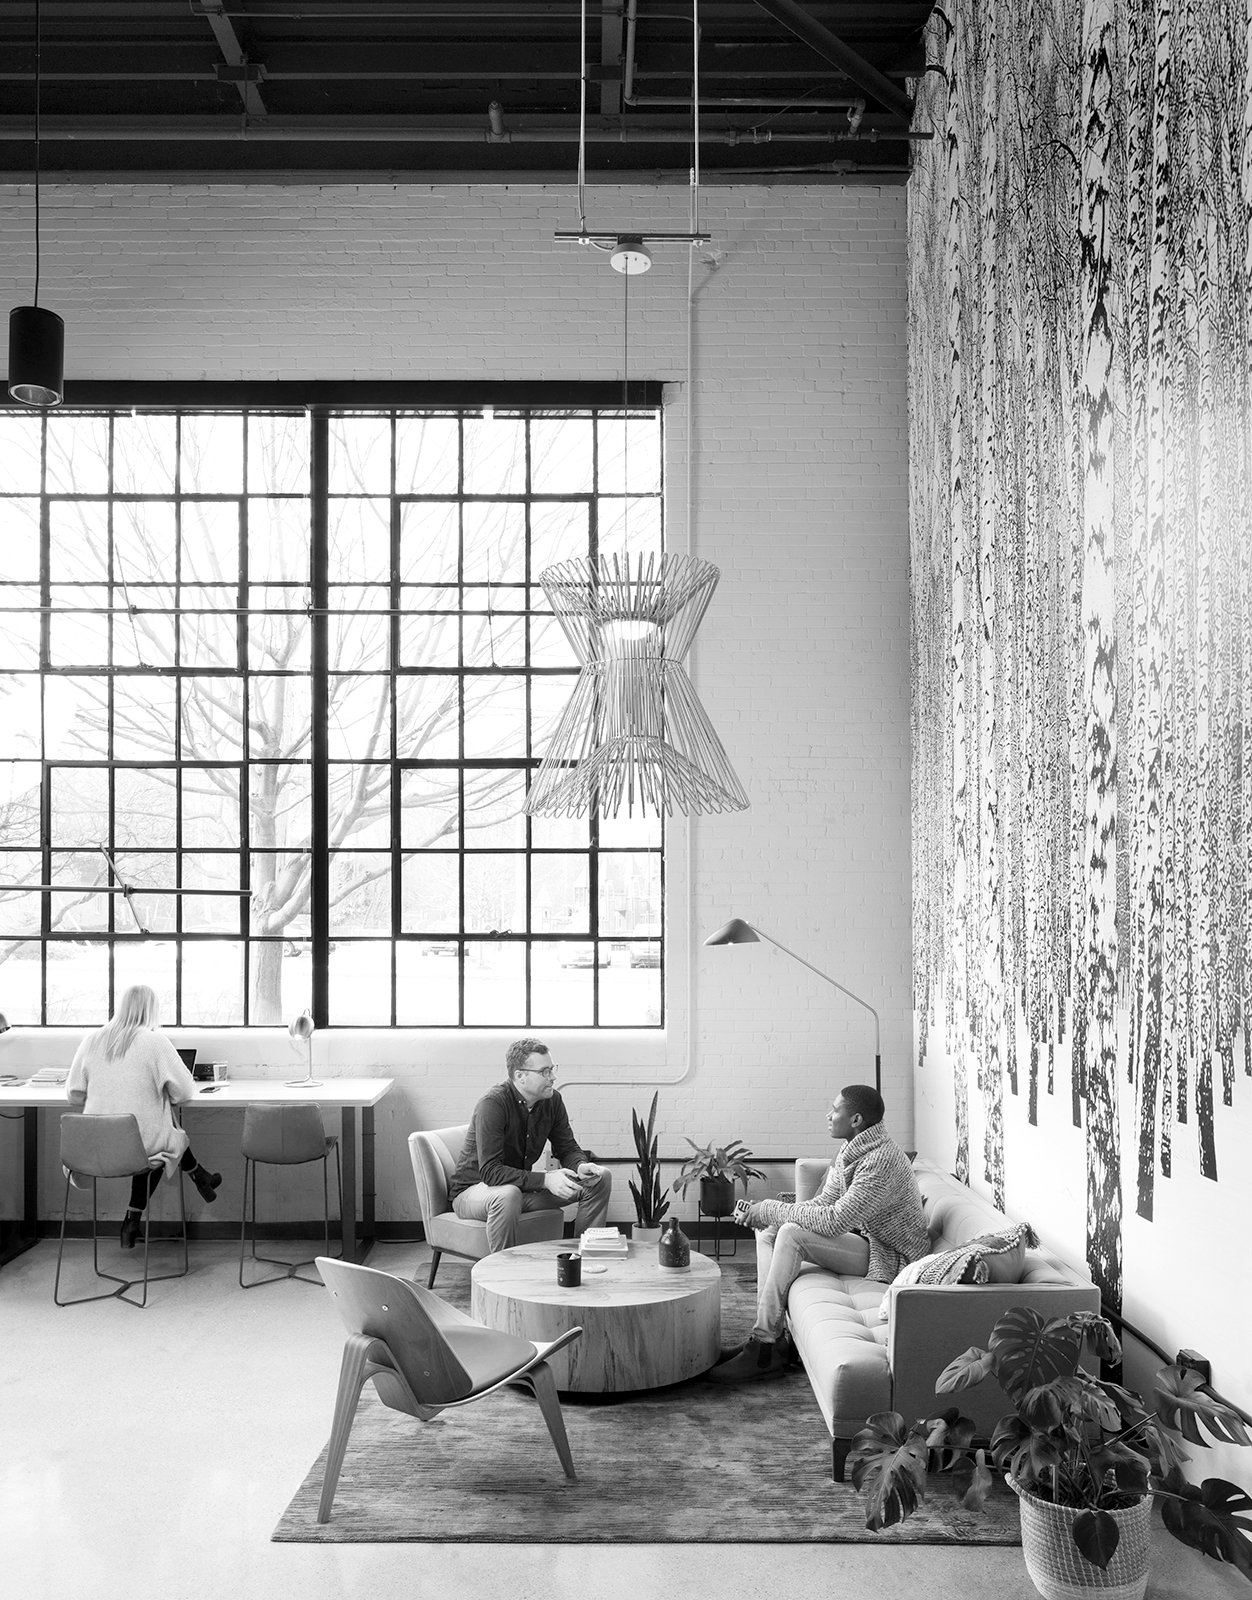 People sitting in AMITY Co-Working lounge project in Northville Michigan Architecture and Interior Design black and white